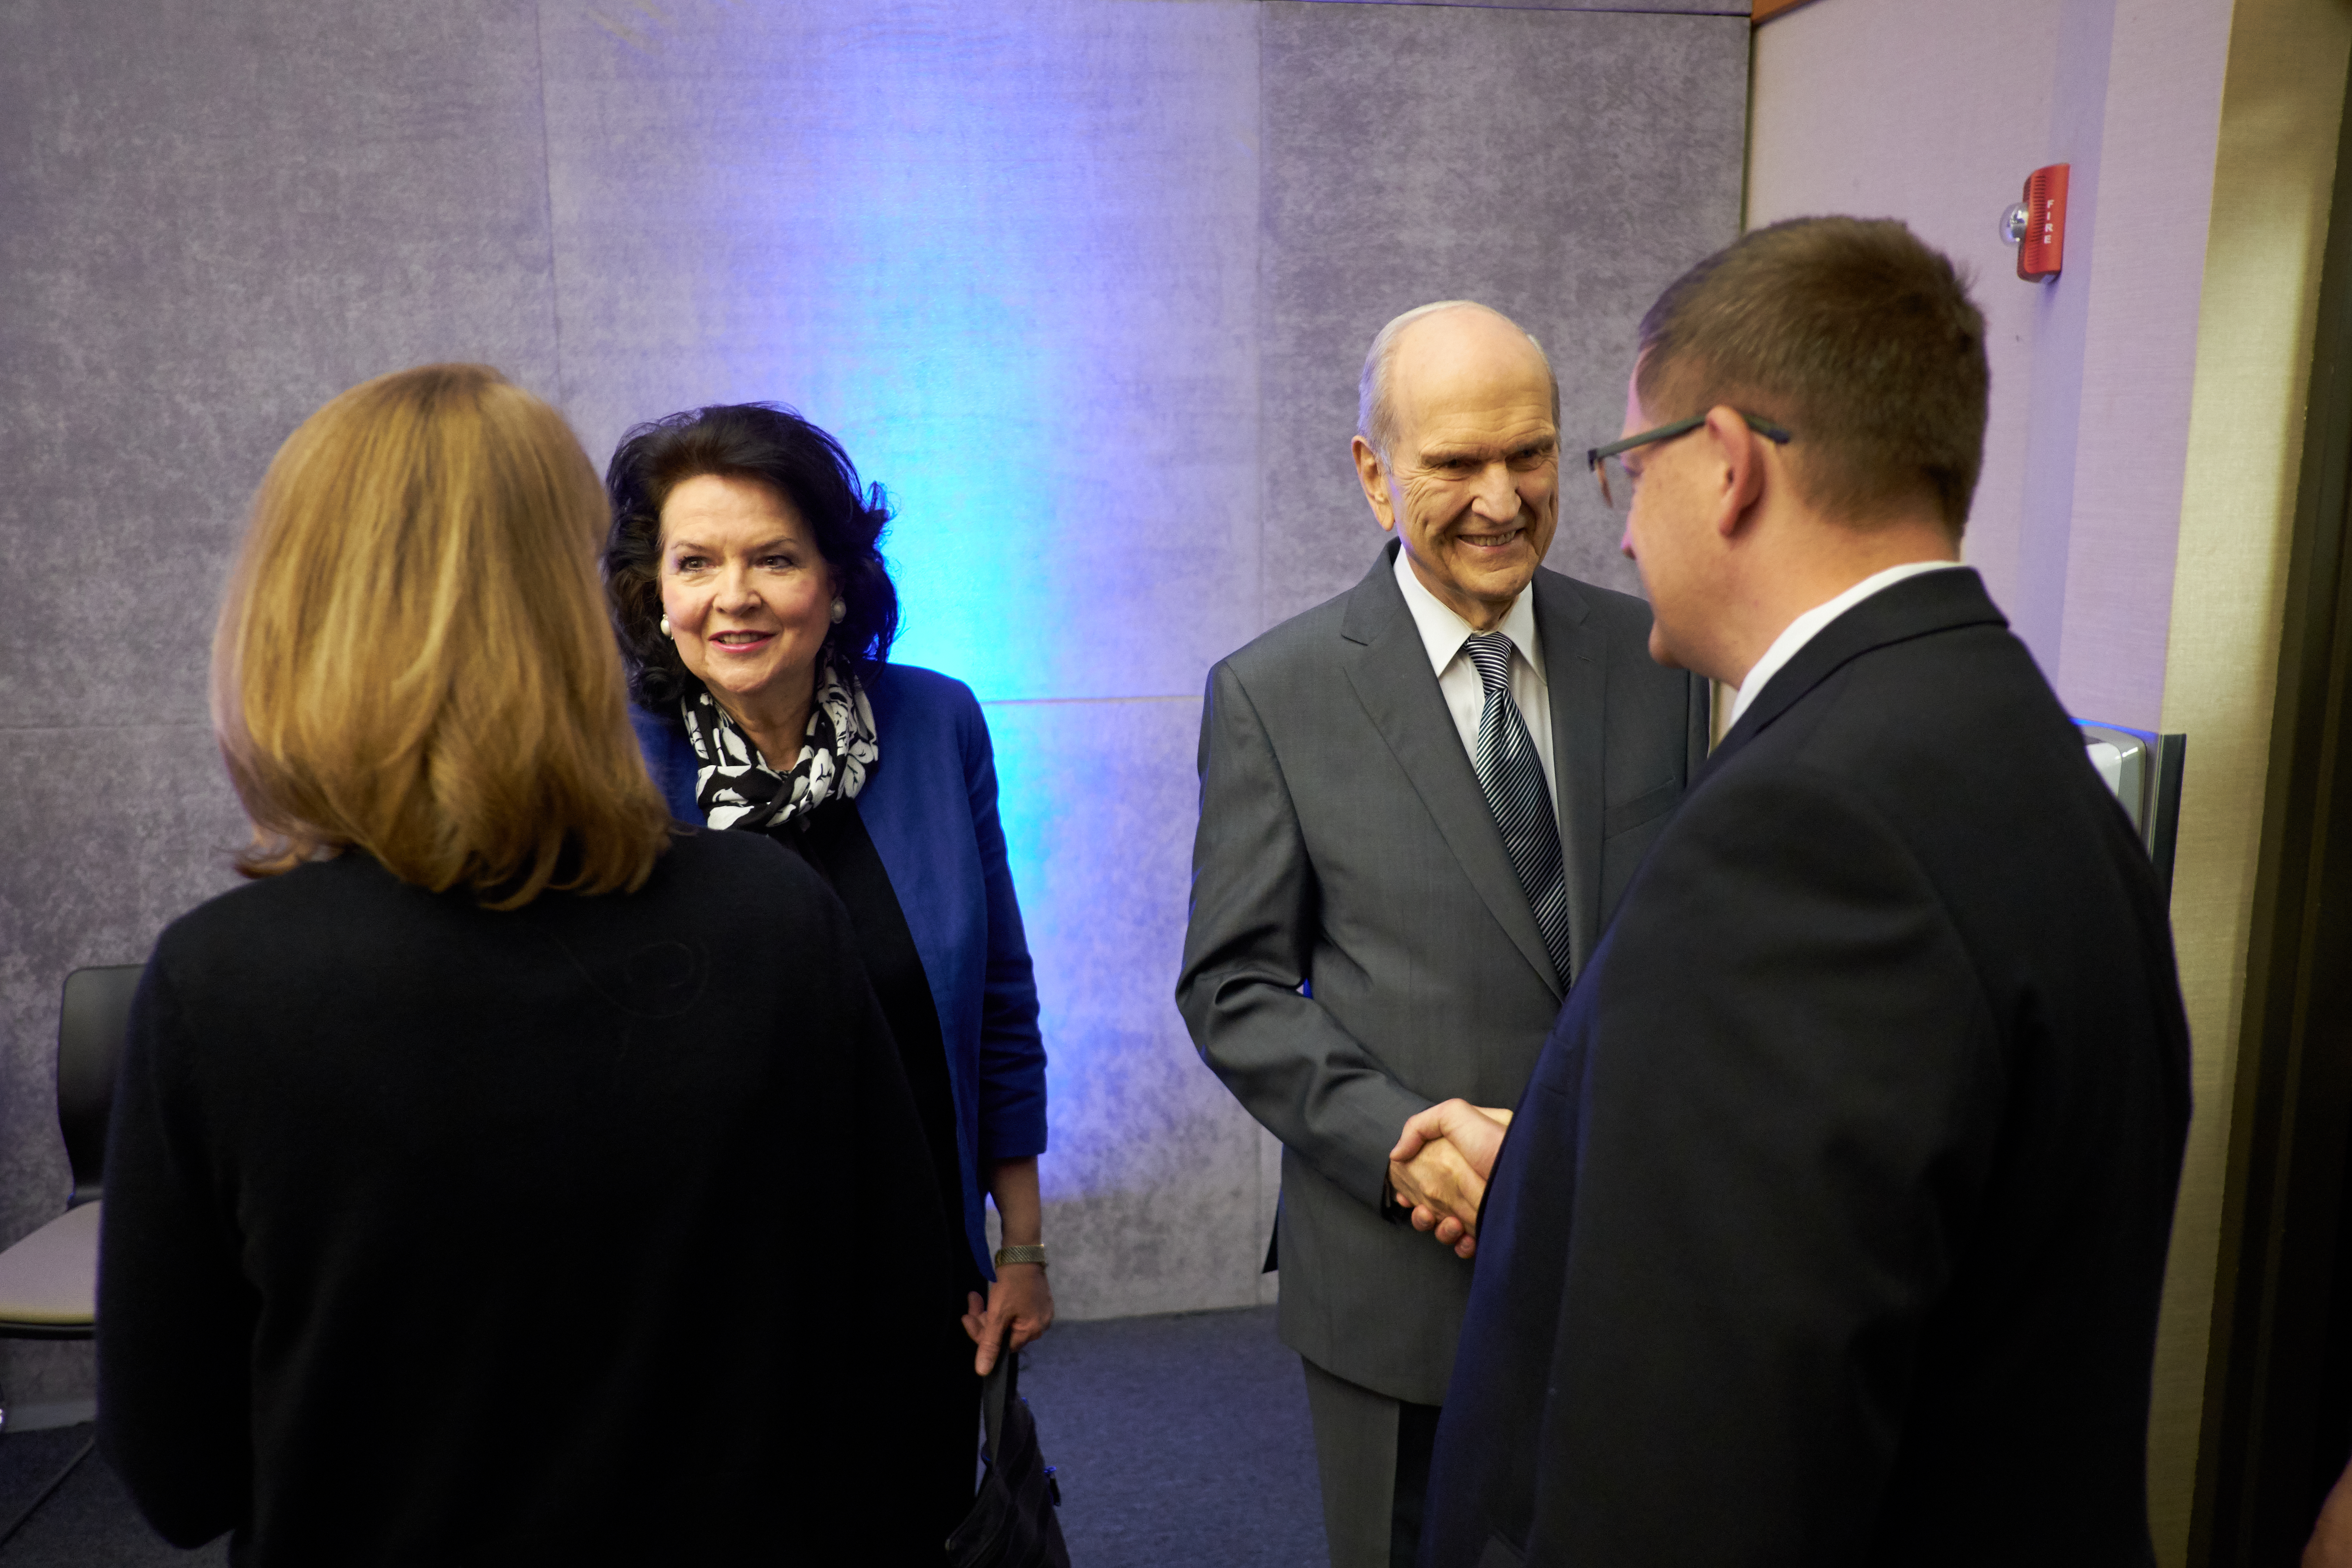 President Russell M. Nelson and his wife, Sister Wendy Nelson, greet new mission presidents and their wives during the 2017 New Mission Presidents Seminar on June 28 in the Provo Missionary Training Center.